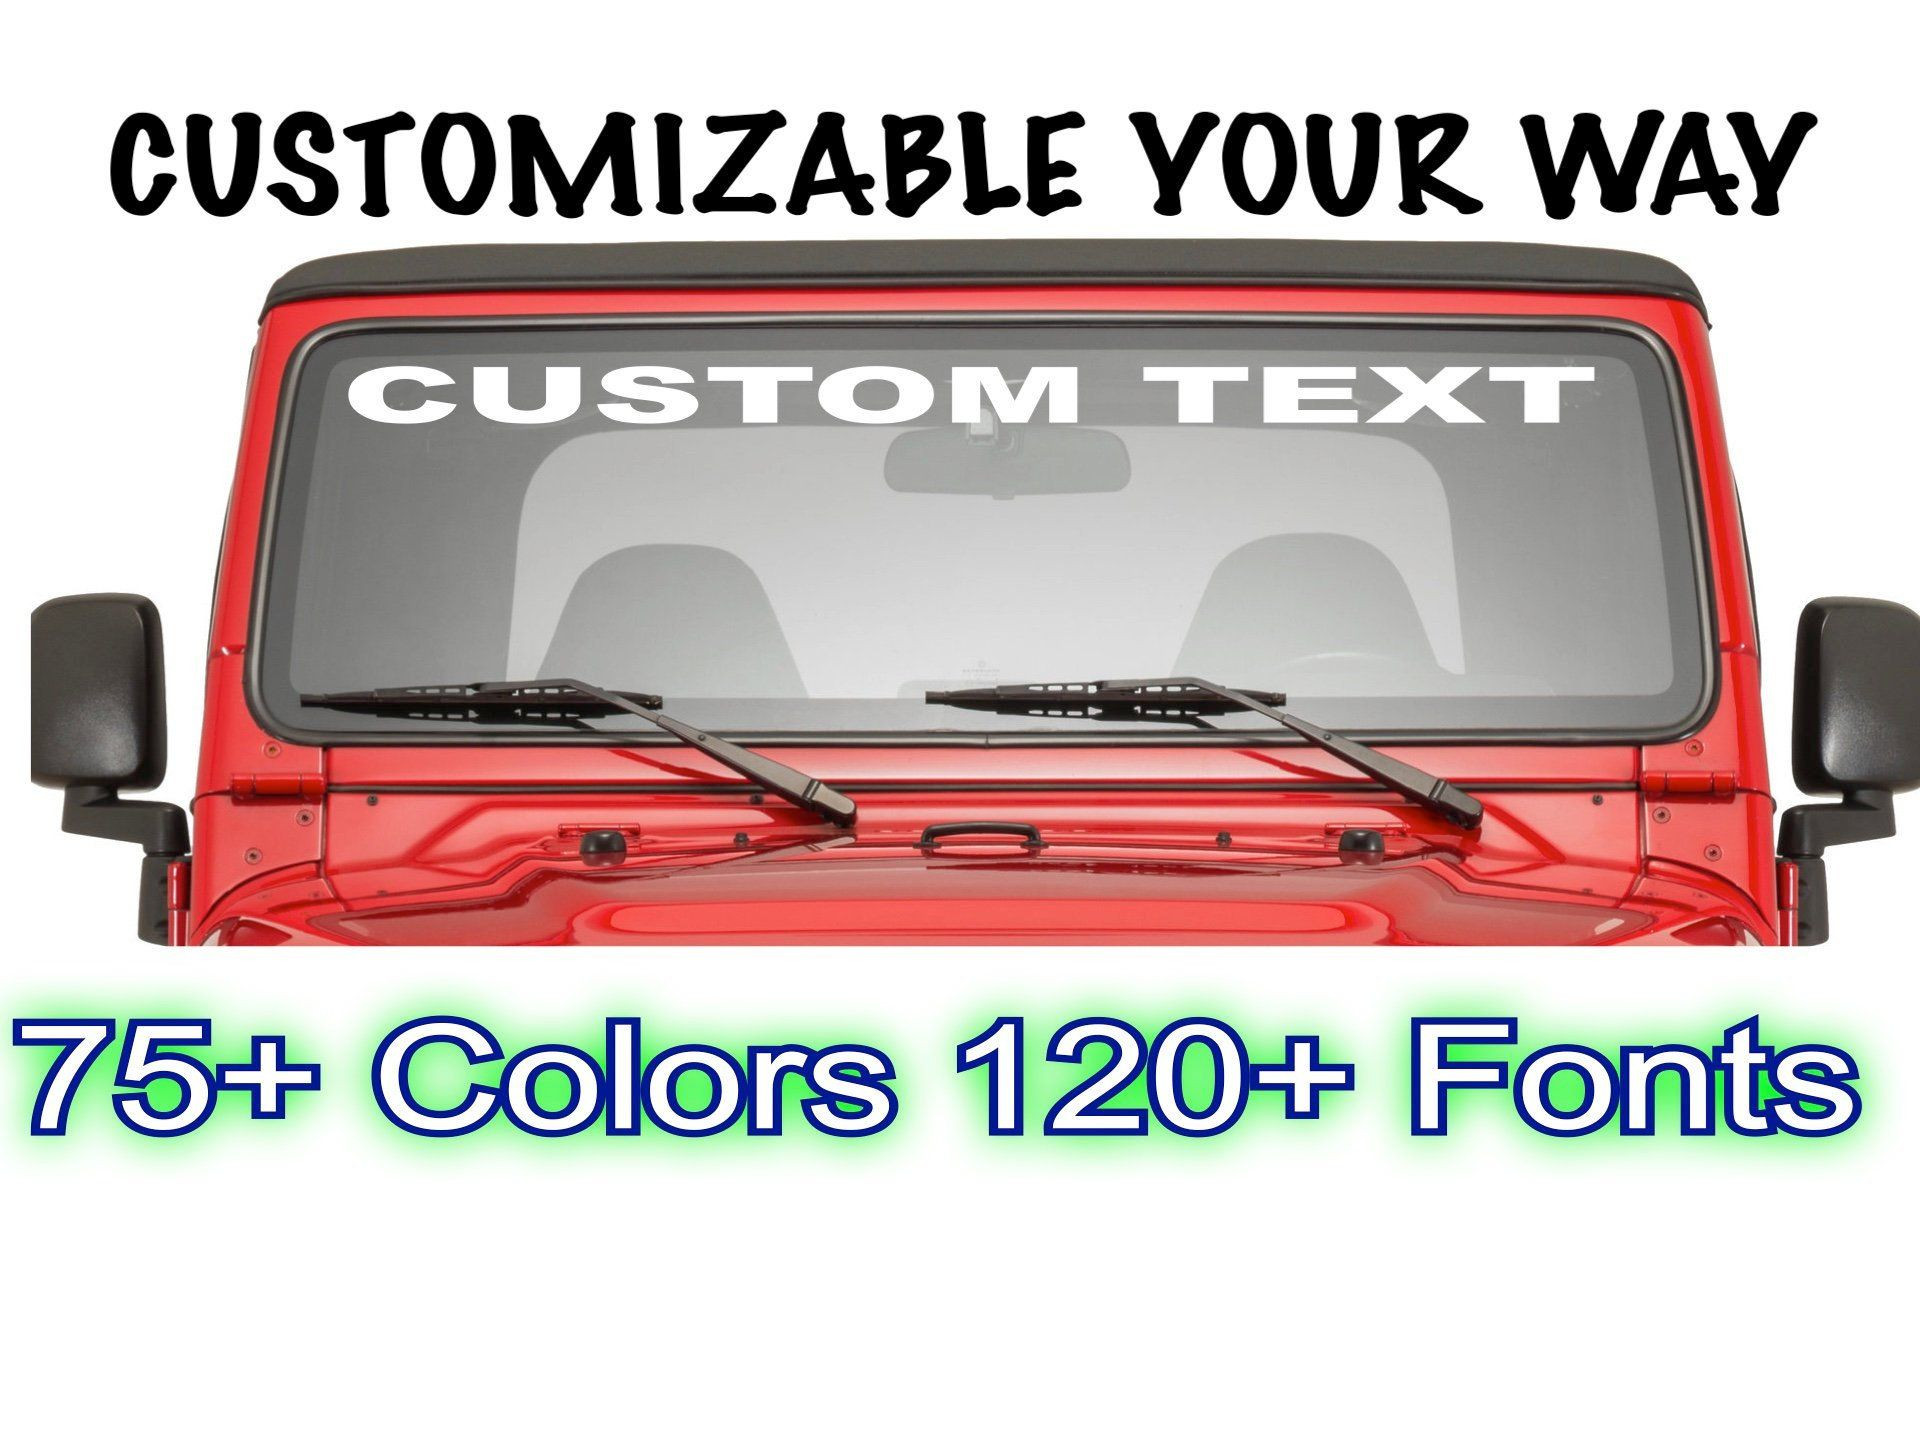 Custom Windshield Decals Words And Numbers Personalize Window Decals And Stickers Company Name Decal Truck Jeep Car Win Custom Jeep Windshield Car Decals Vinyl [ 1440 x 1920 Pixel ]